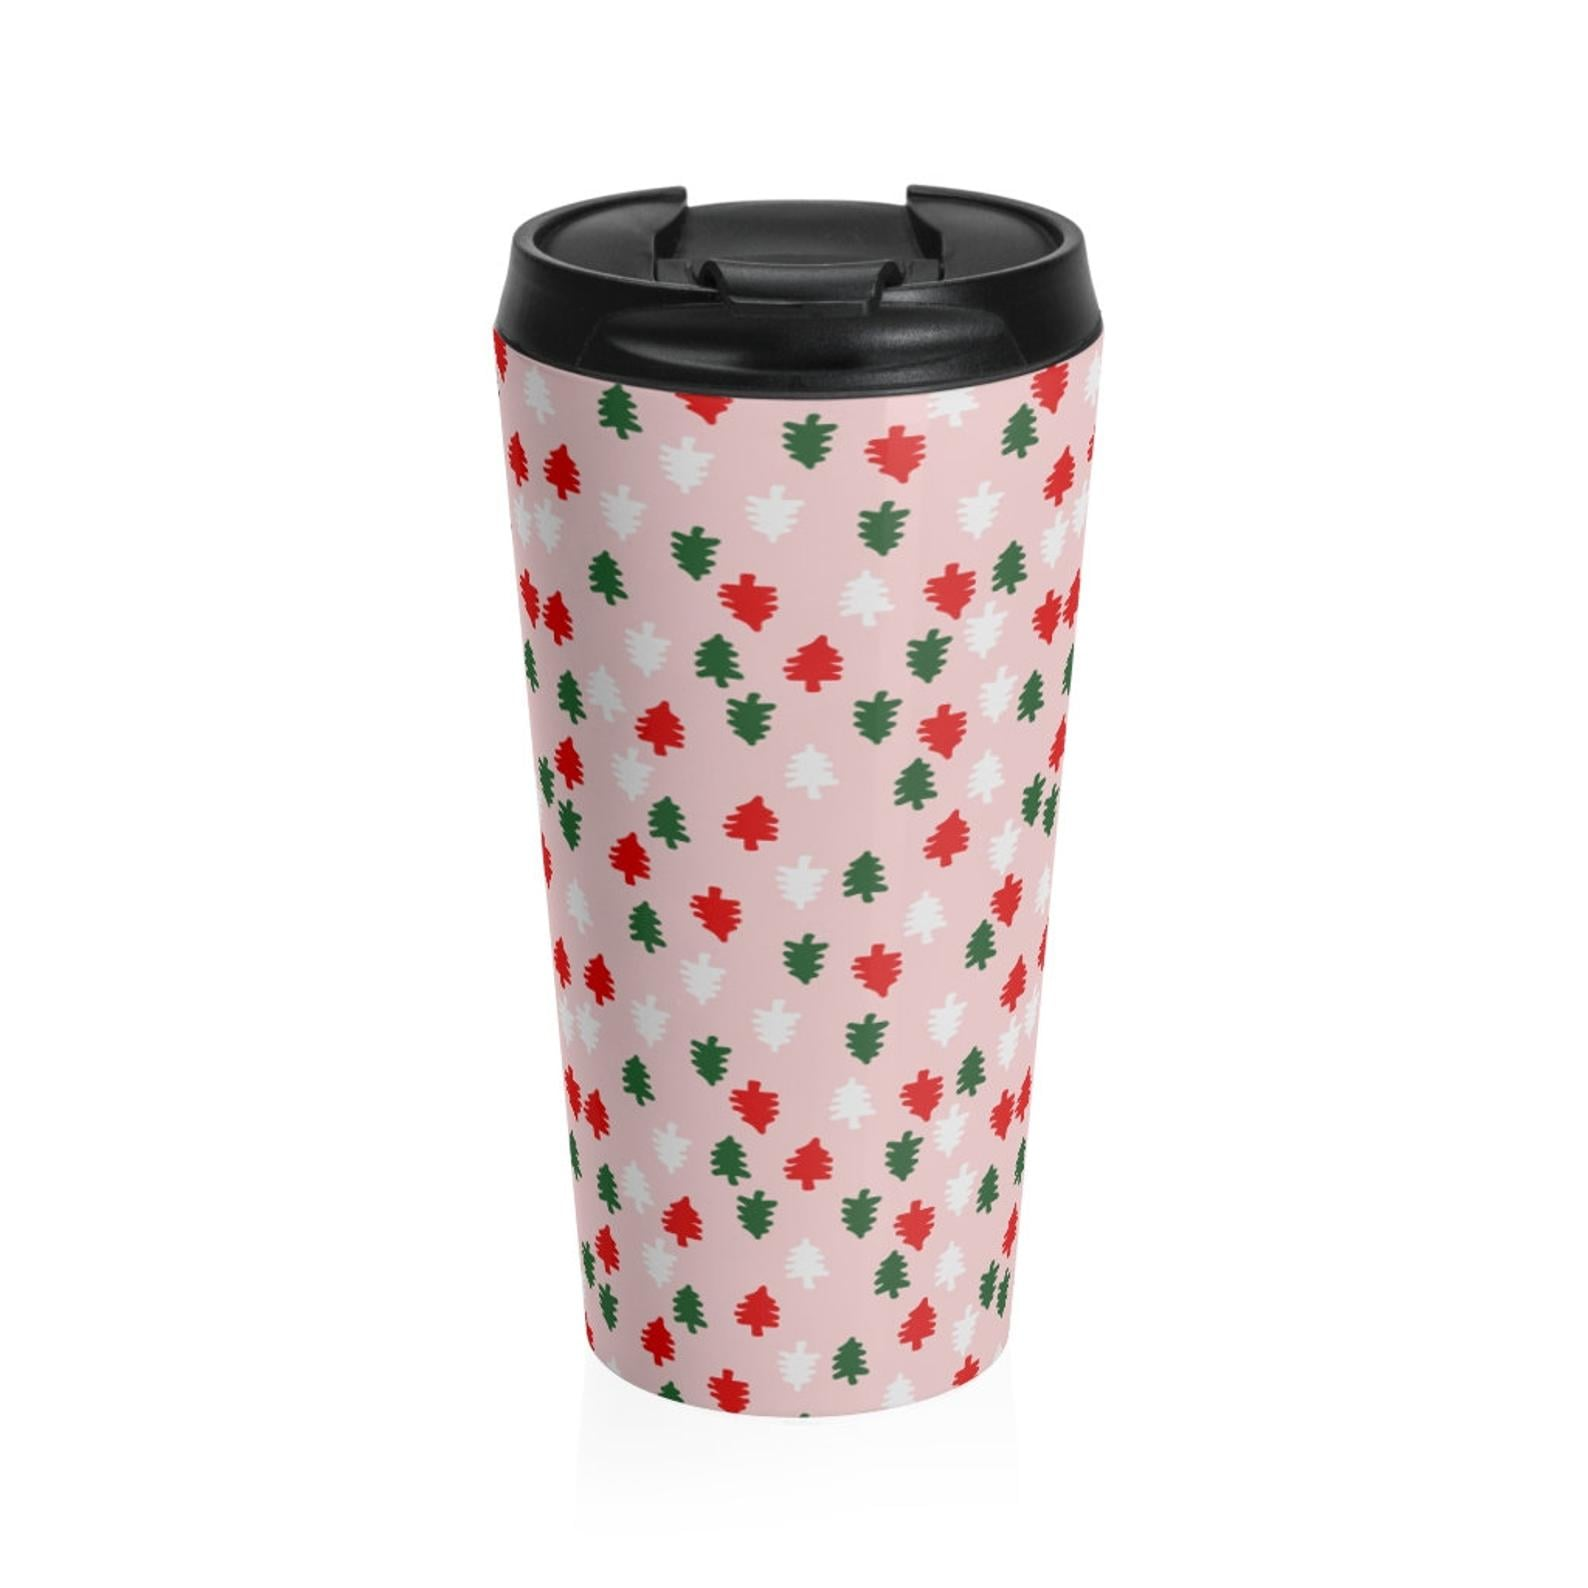 Best Christmas Coffee Tumblers 2020 Popsugar Food